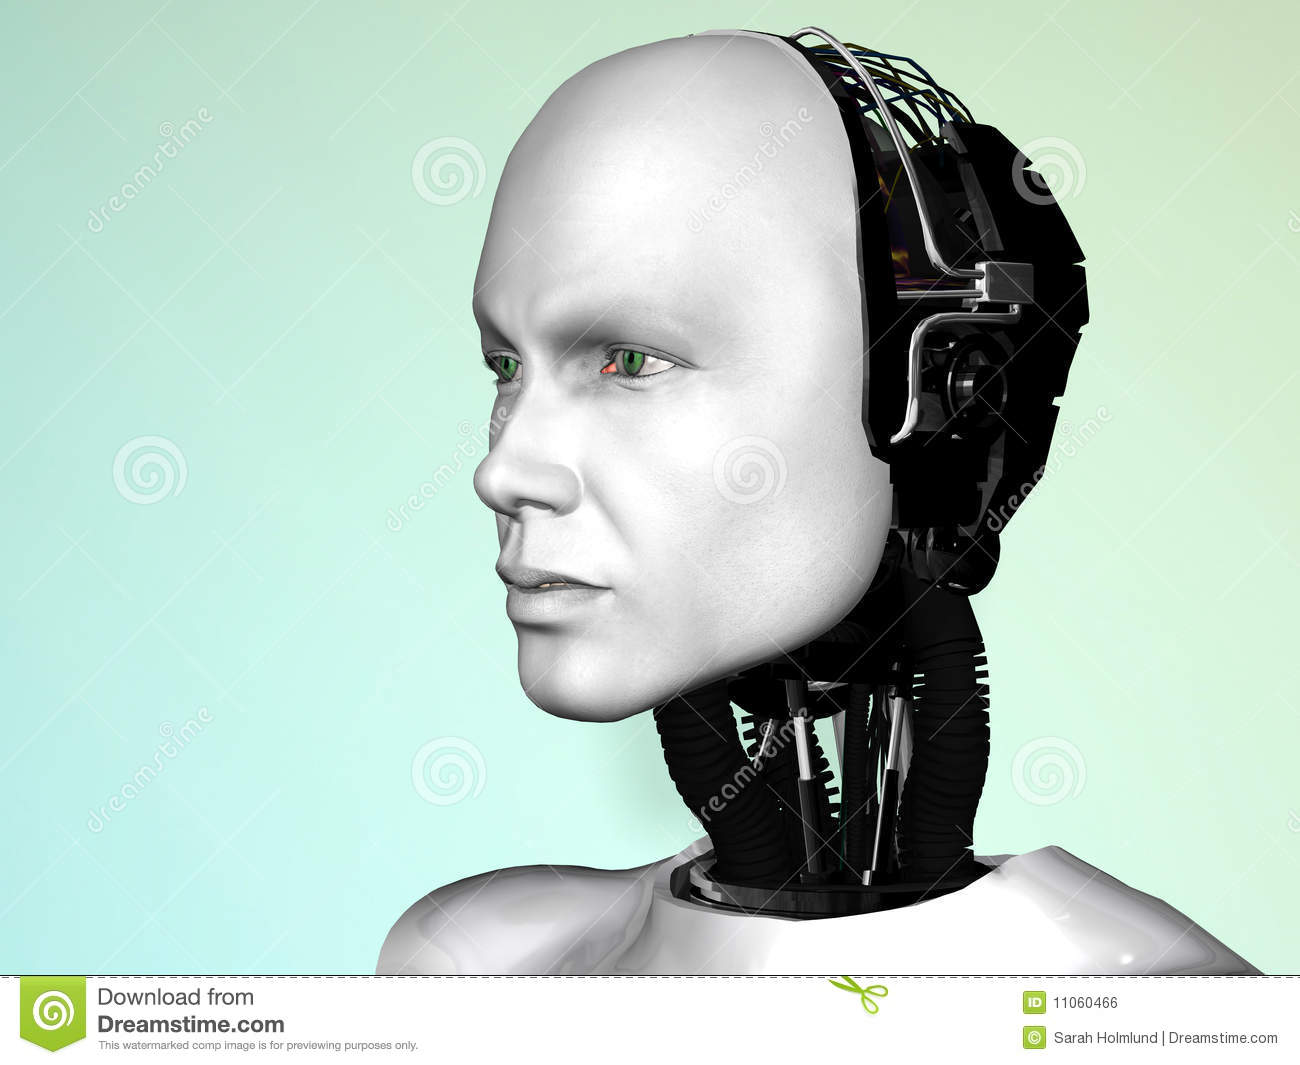 the face of a robot man royalty free stock image image free clipart of handshake to giving free clipart handshake images